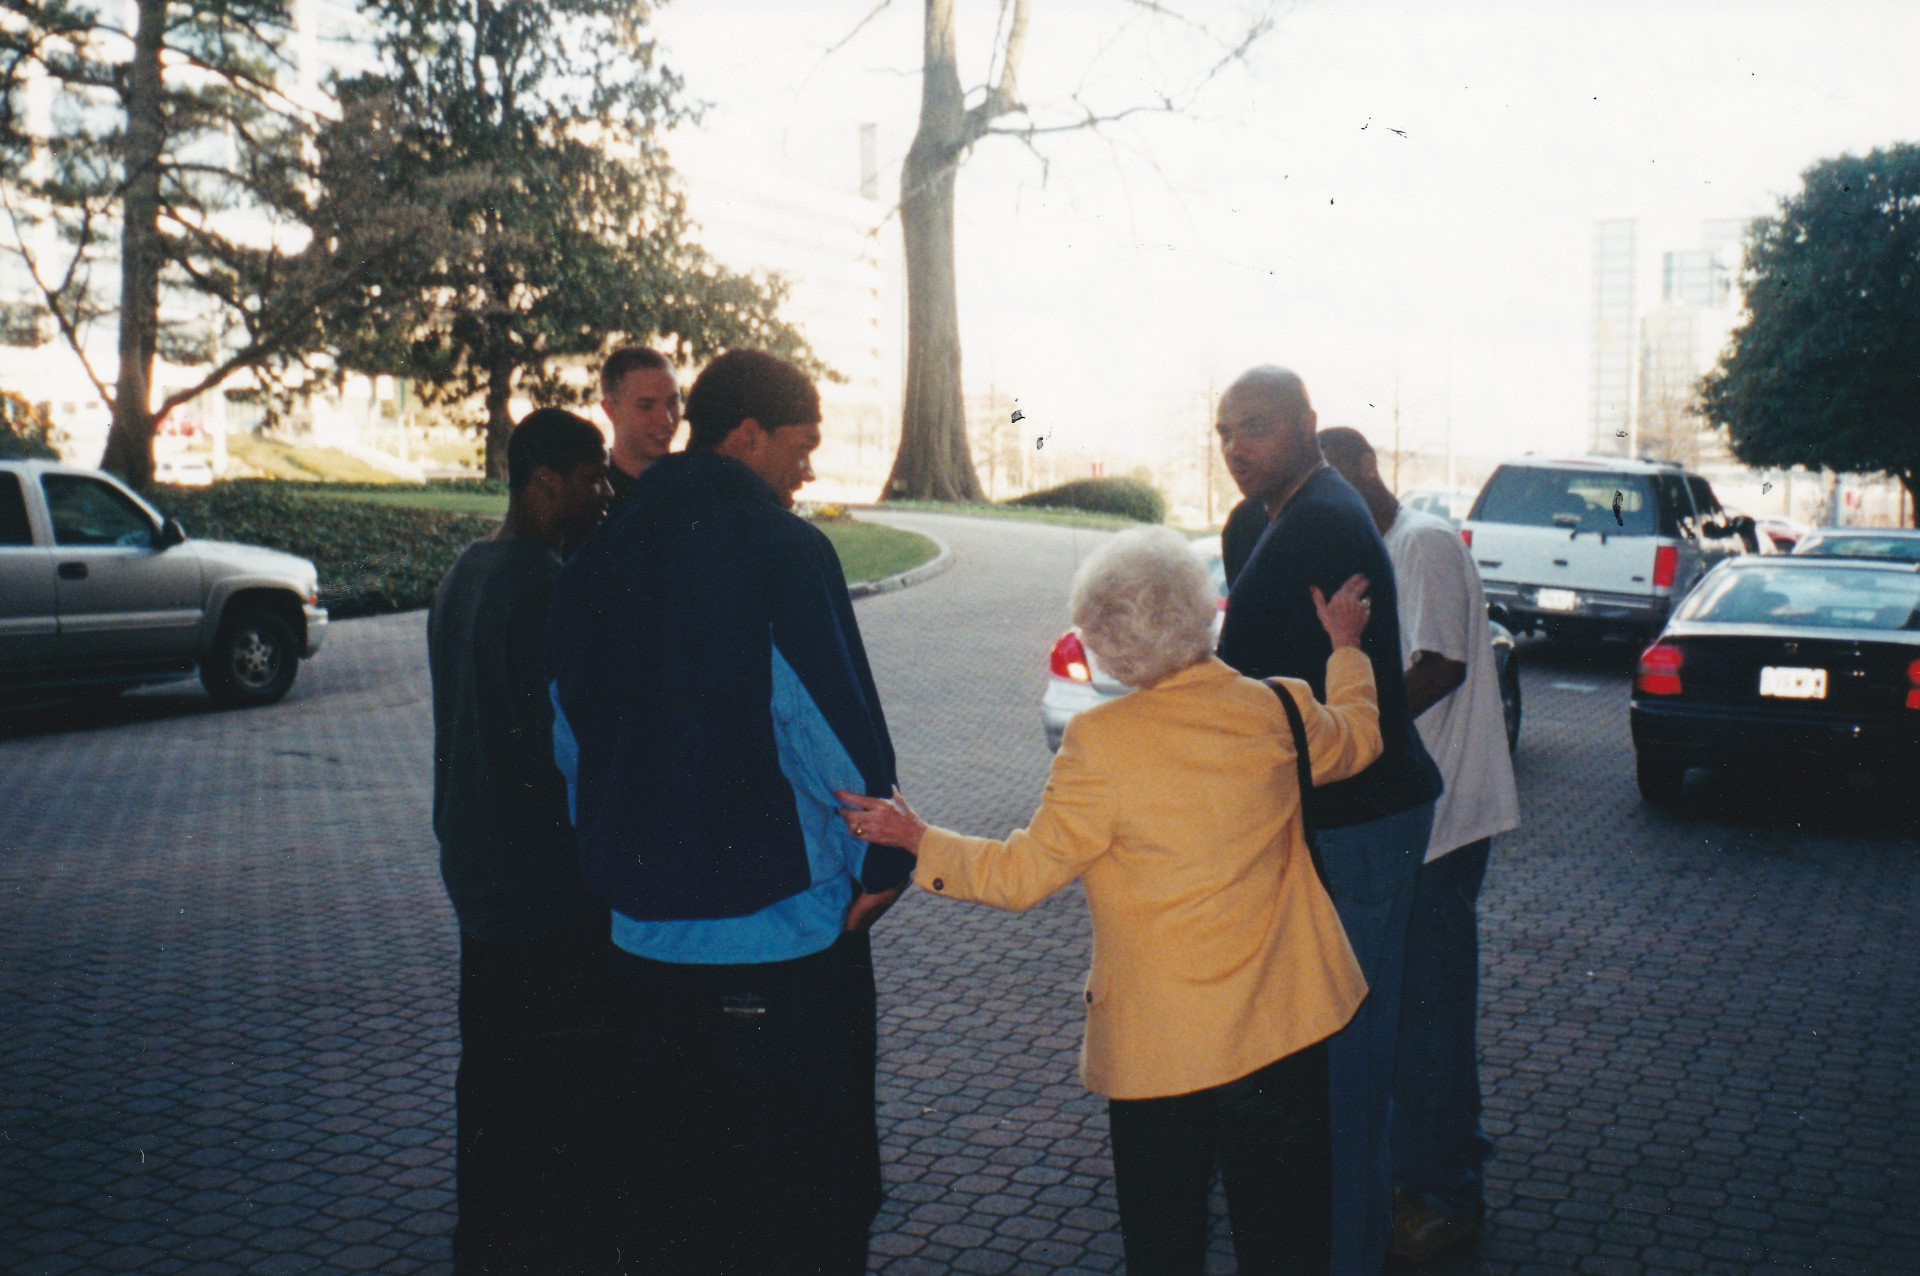 Ann Spencer (yellow jacket, back to camera) talks to a group of University of North Carolina basketball players, along with tv analyst Charles Barkley (second from right)